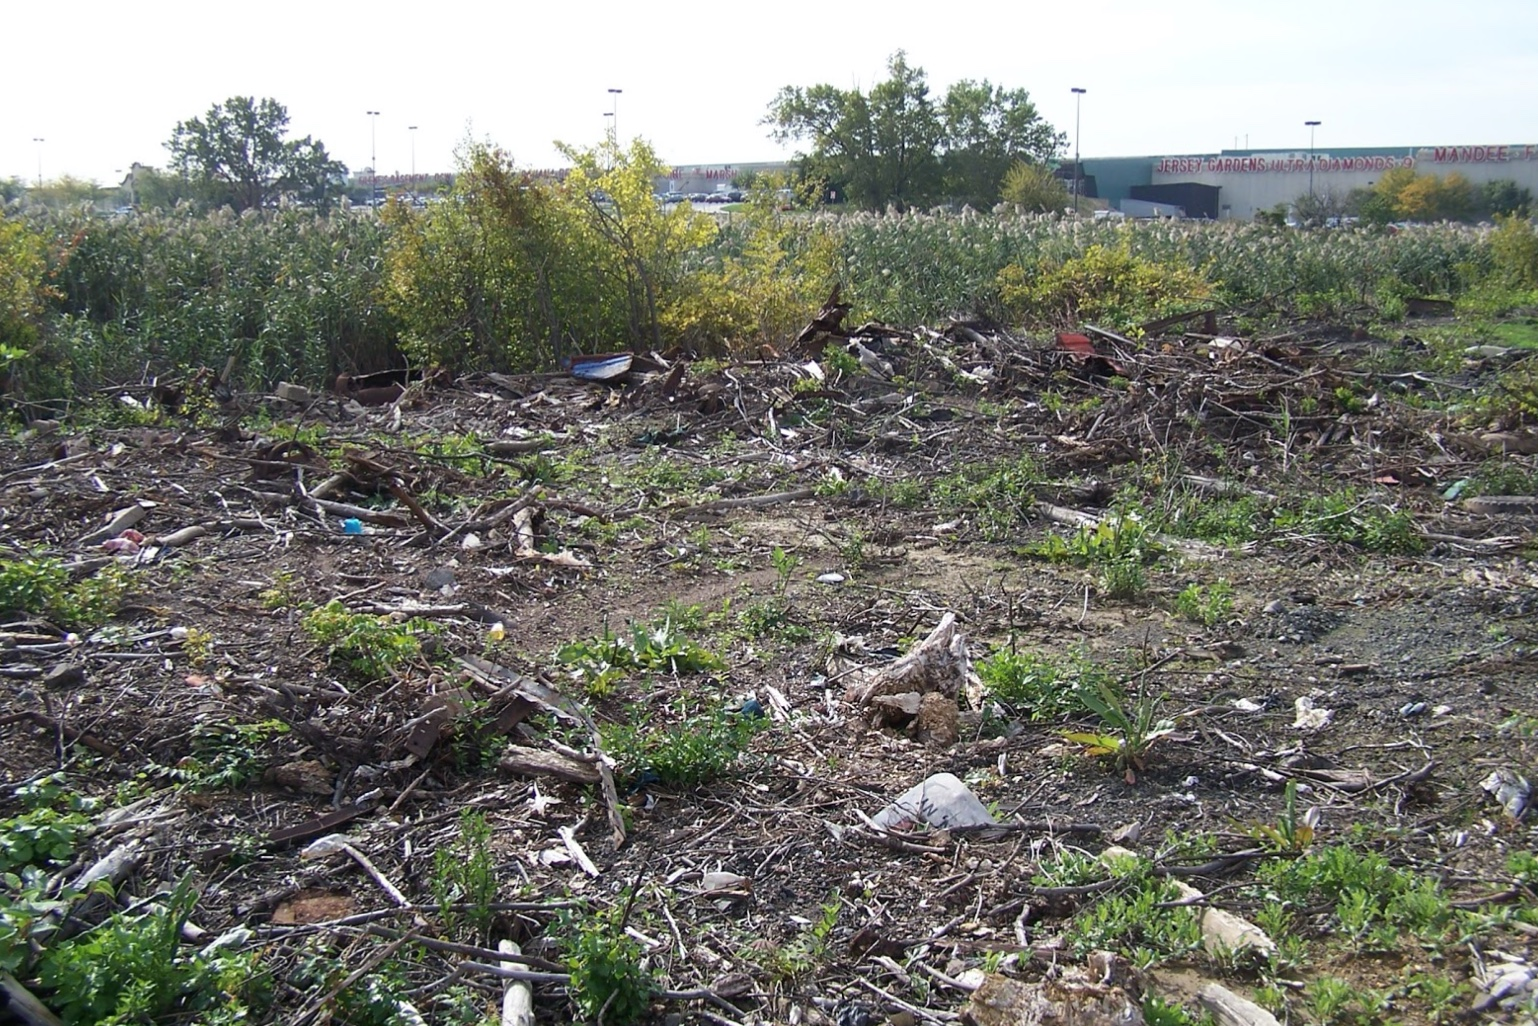 In 2004, Prologis hired Princeton Hydro to restore an 18-acre area adjacent to the Elizabeth Seaport Business Park, which a significantly disturbed and degraded mosaic of wetland and upland areas.